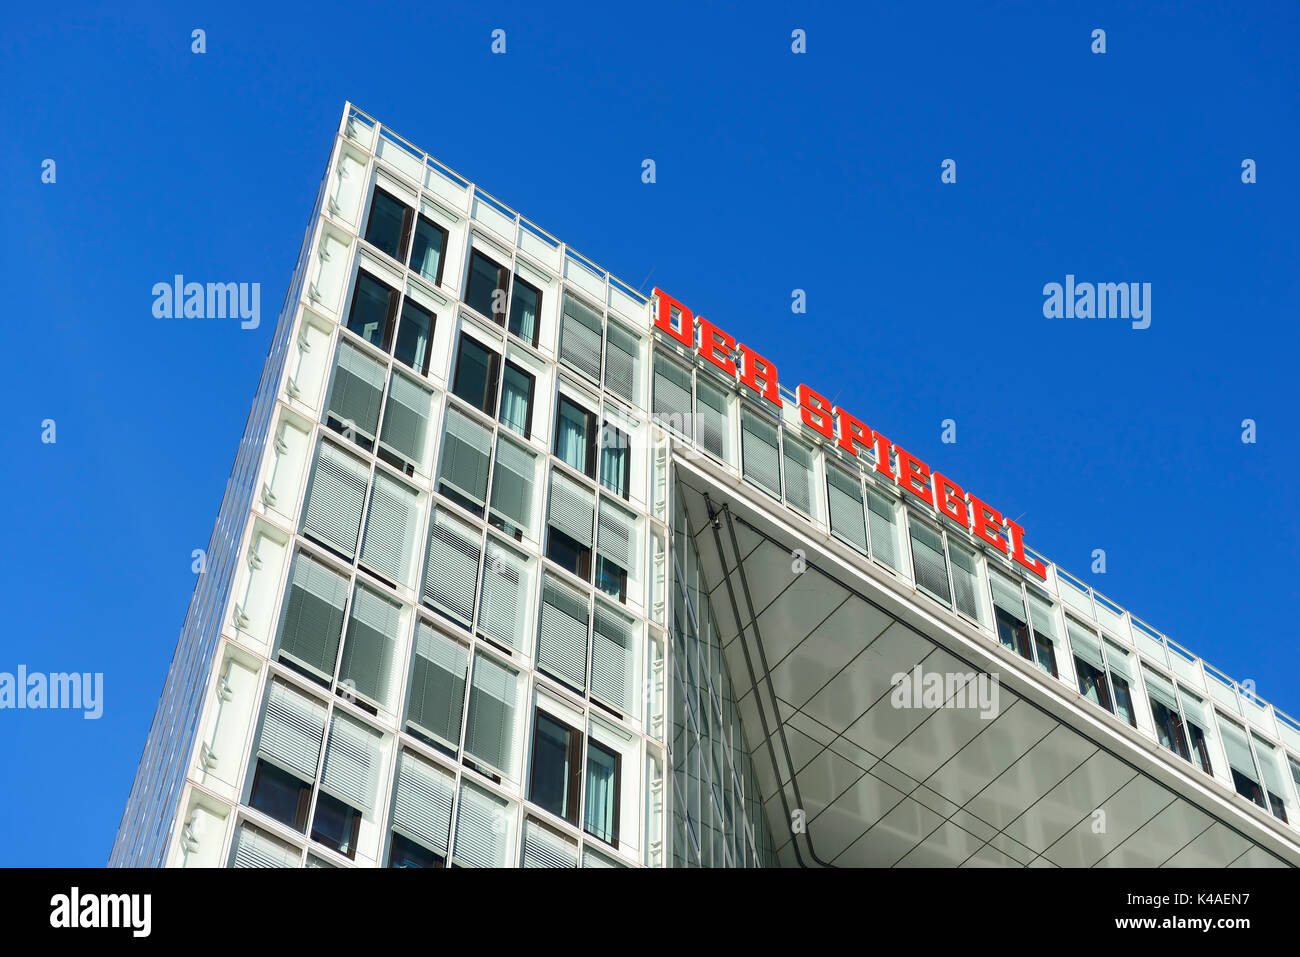 Spiegel Sonderausgabe Hamburg Spiegel Publishing House Stock Photos And Spiegel Publishing